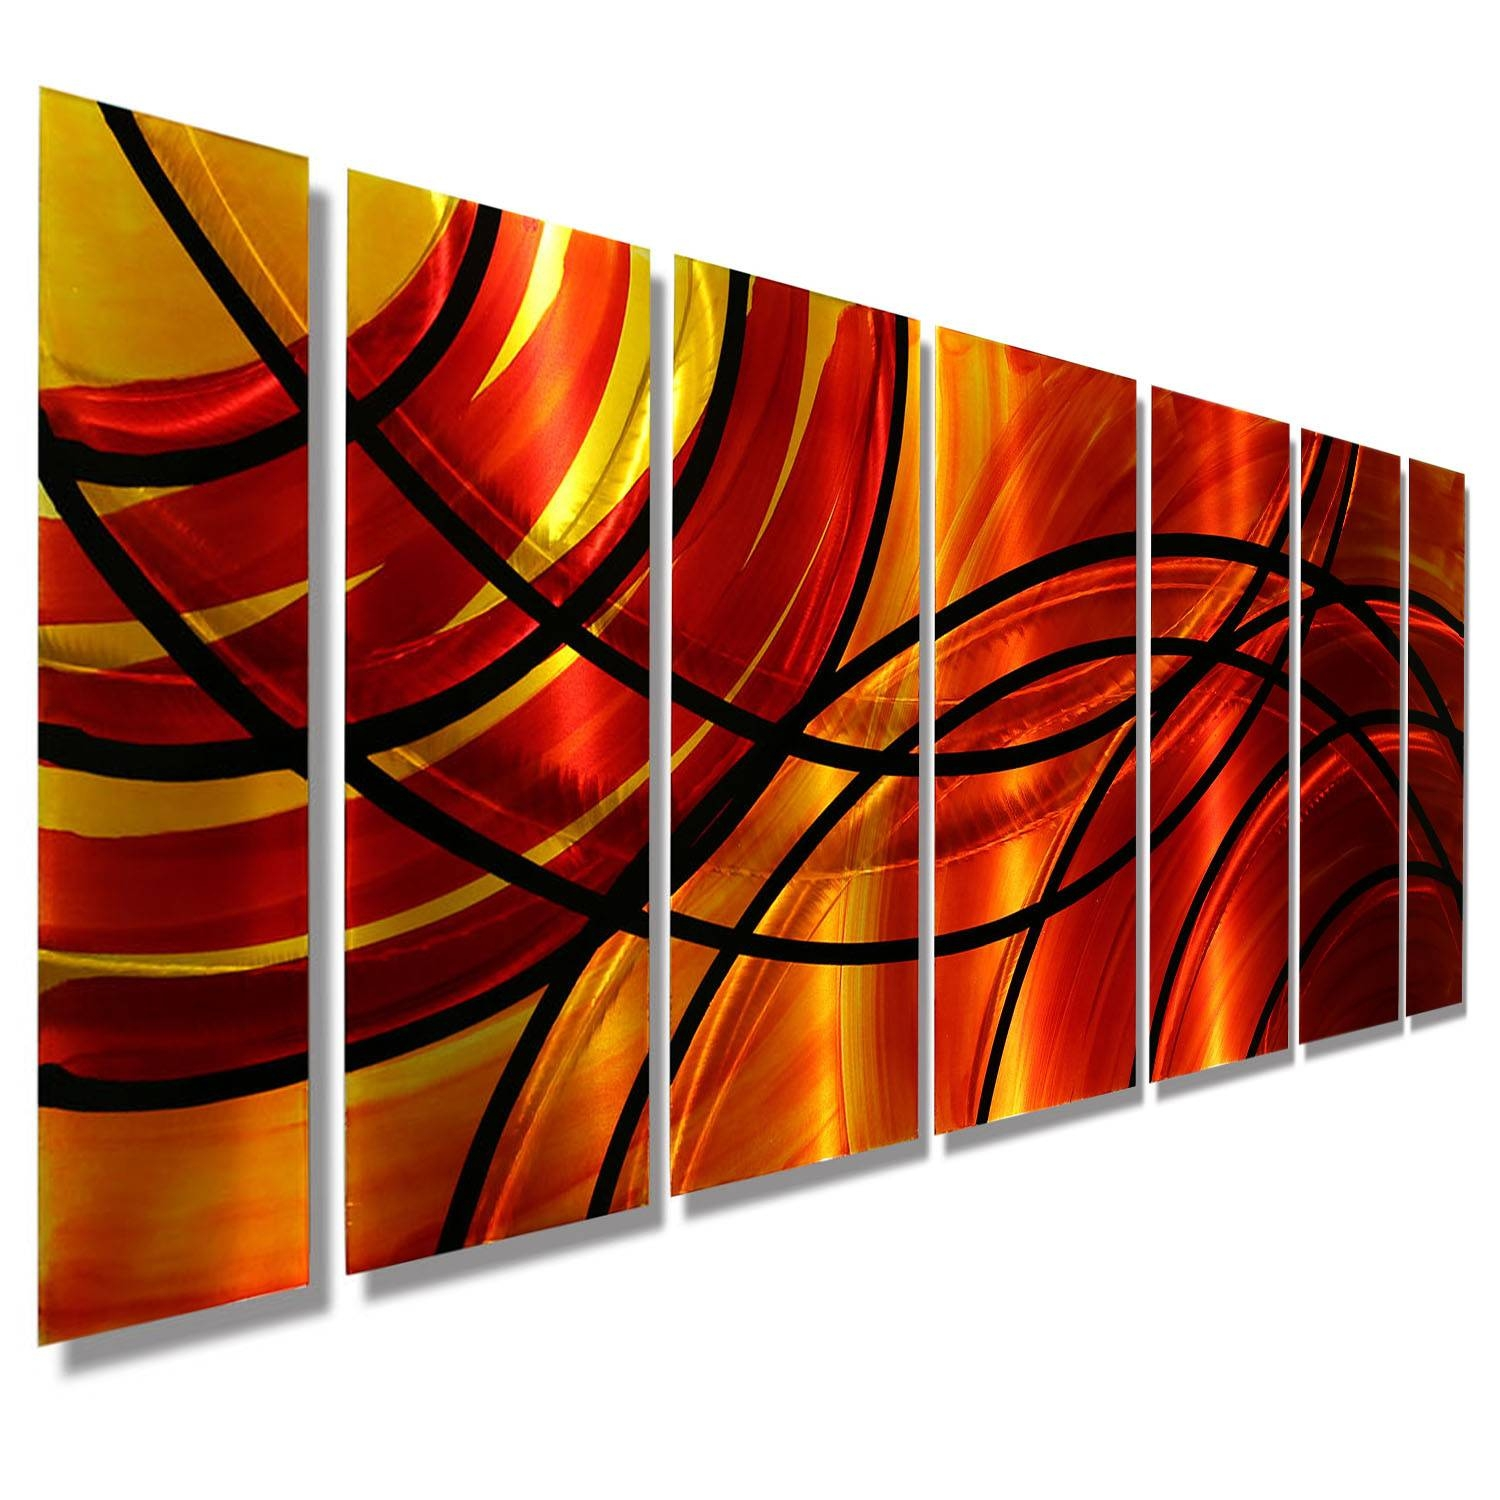 Boundfire – Red & Orange Modern Metal Wall Artjon Allen With Regard To Newest Painted Metal Wall Art (View 7 of 20)